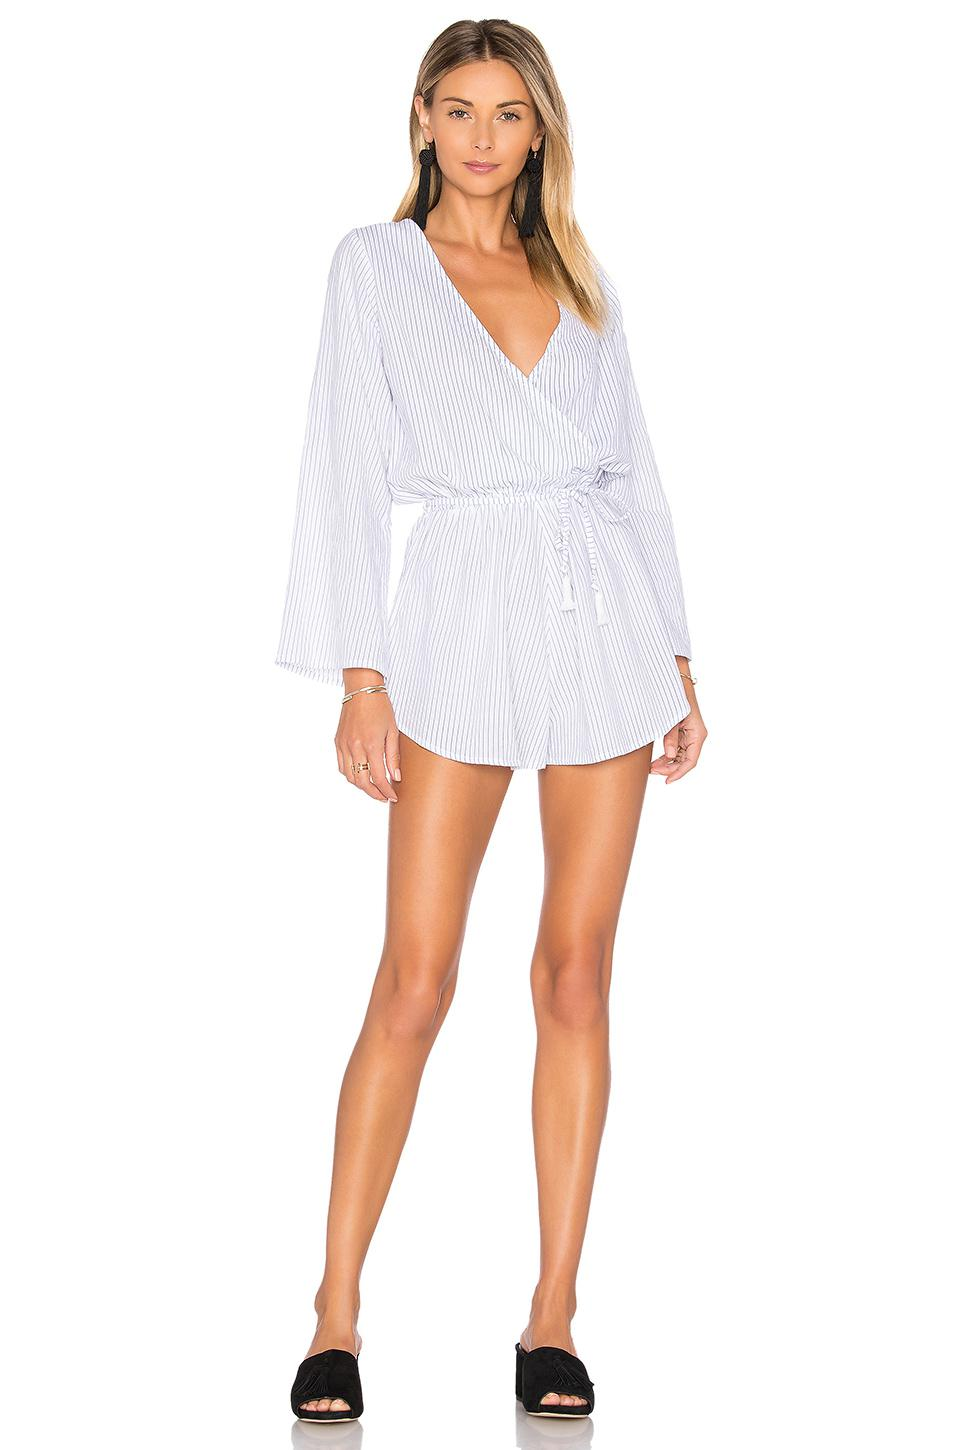 8a8f9abdd7 Lyst - Faithfull The Brand Sunkissed Playsuit in Black